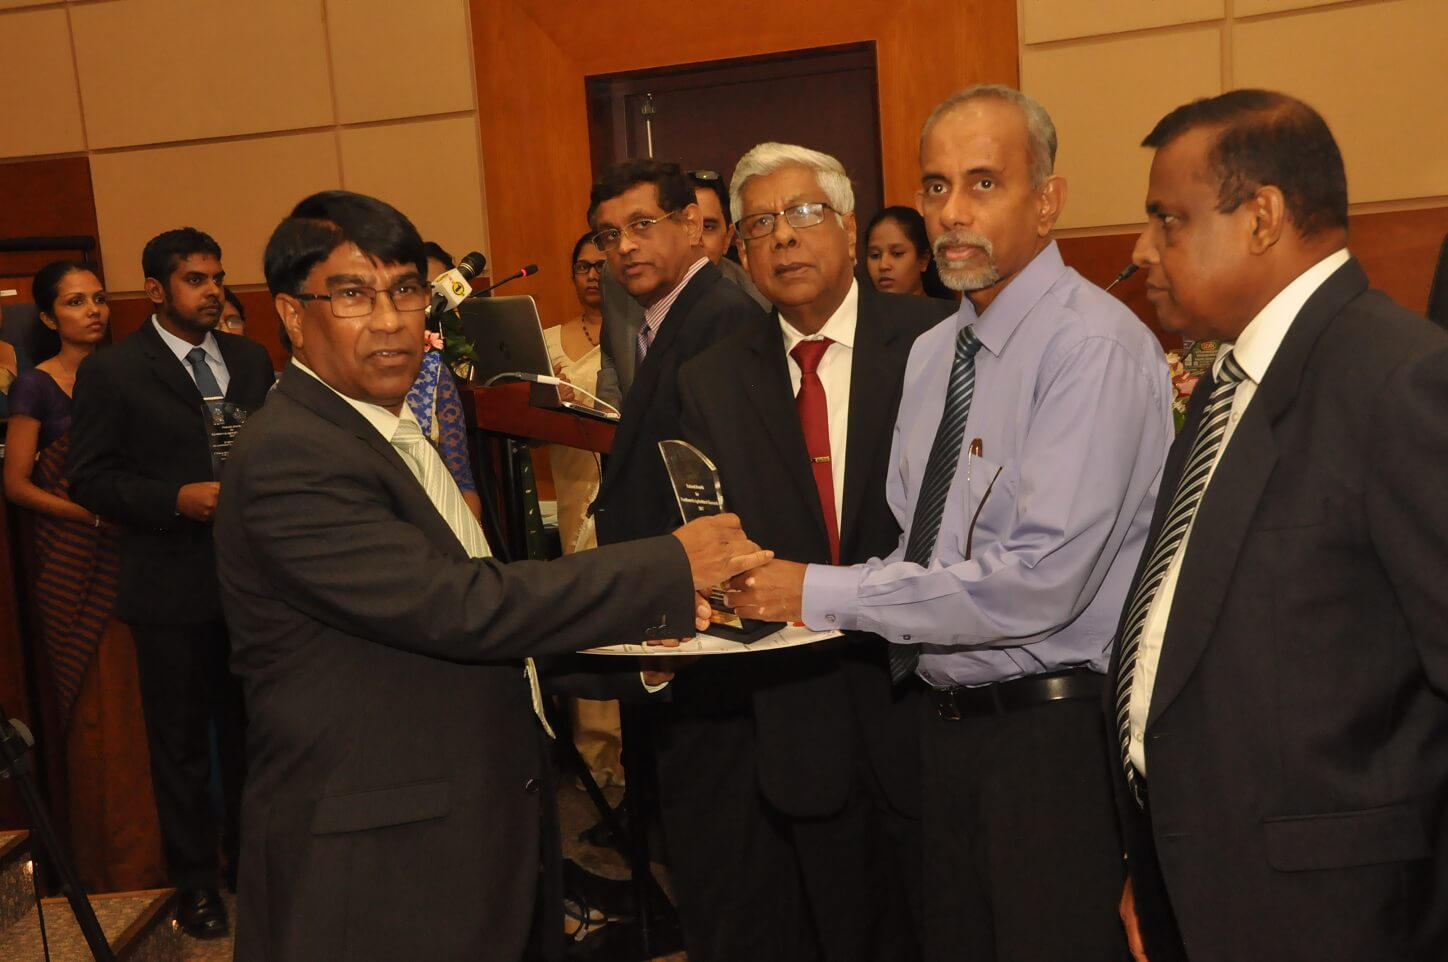 CIC wins the National award for the most Innovative Agriculture Research Work done in Sri Lanka